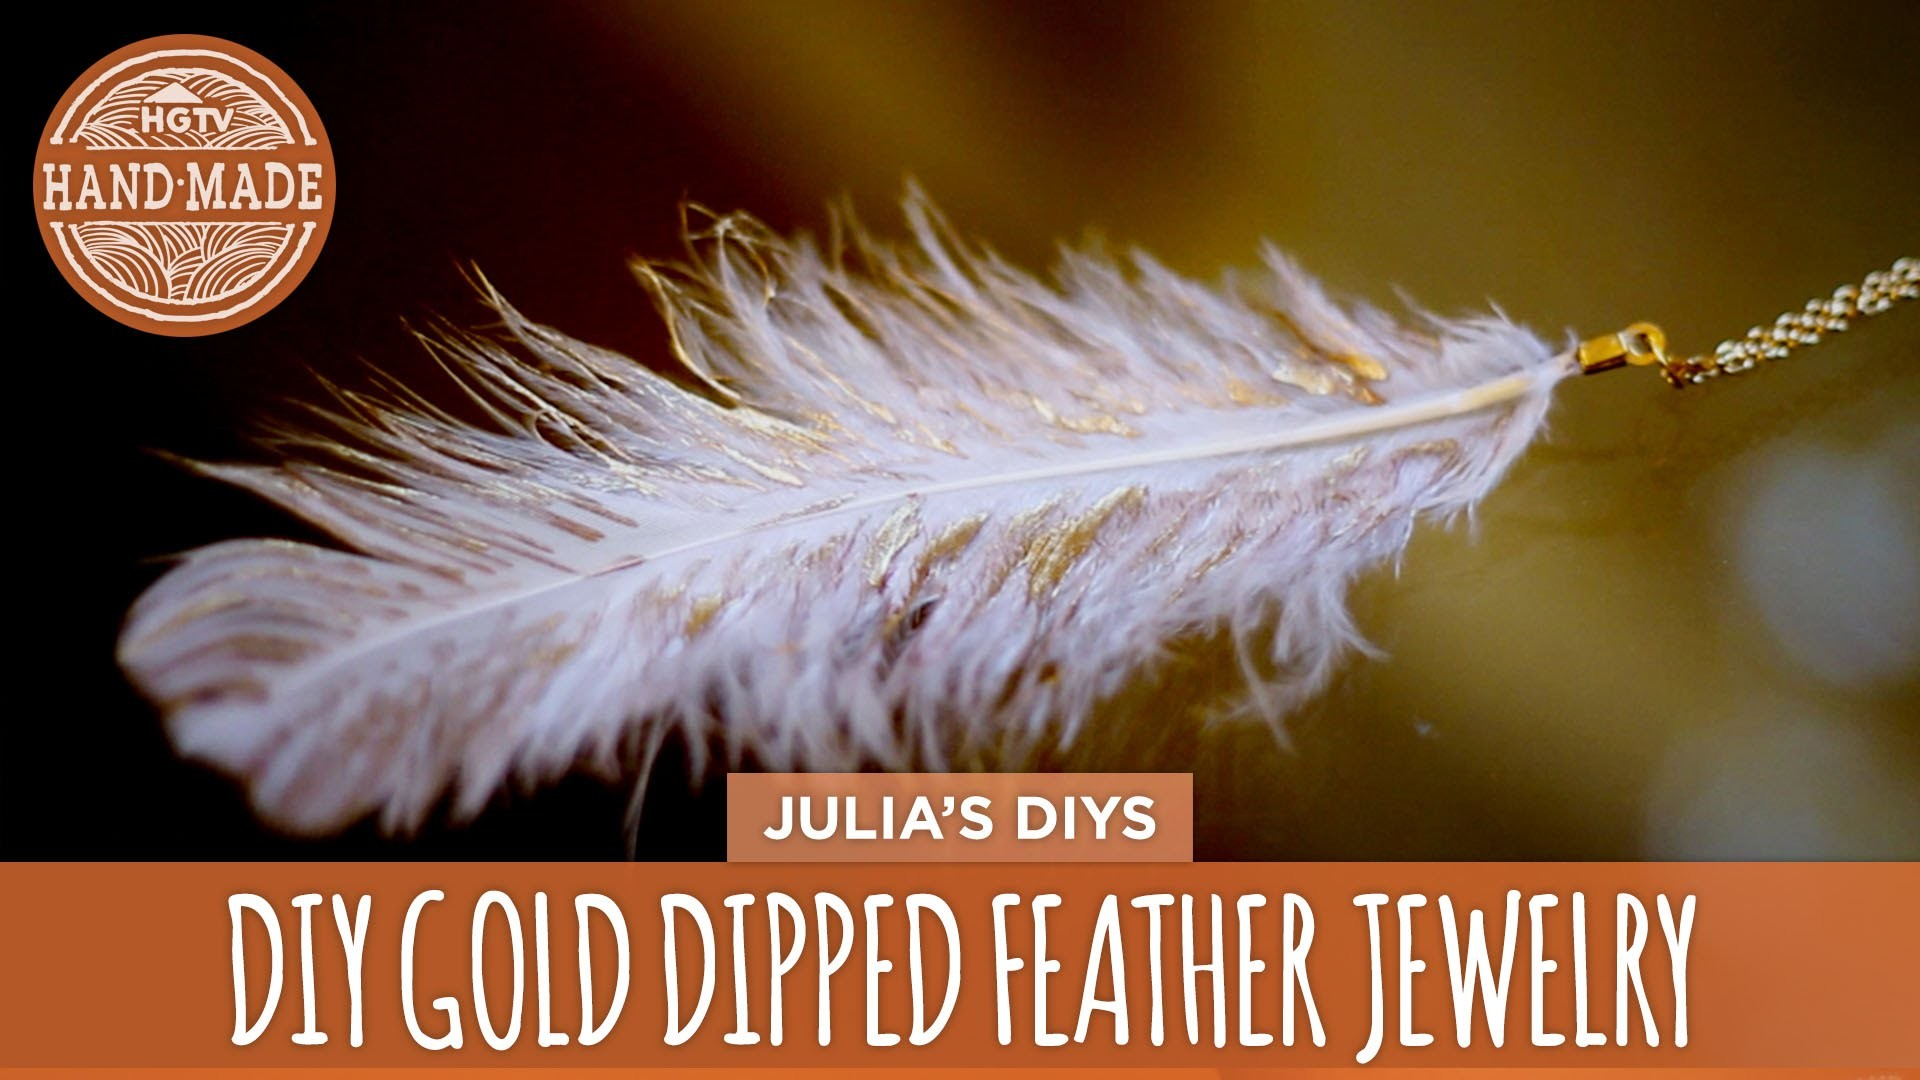 DIY Gold Dipped Feather Jewelry - HGTV Handmade